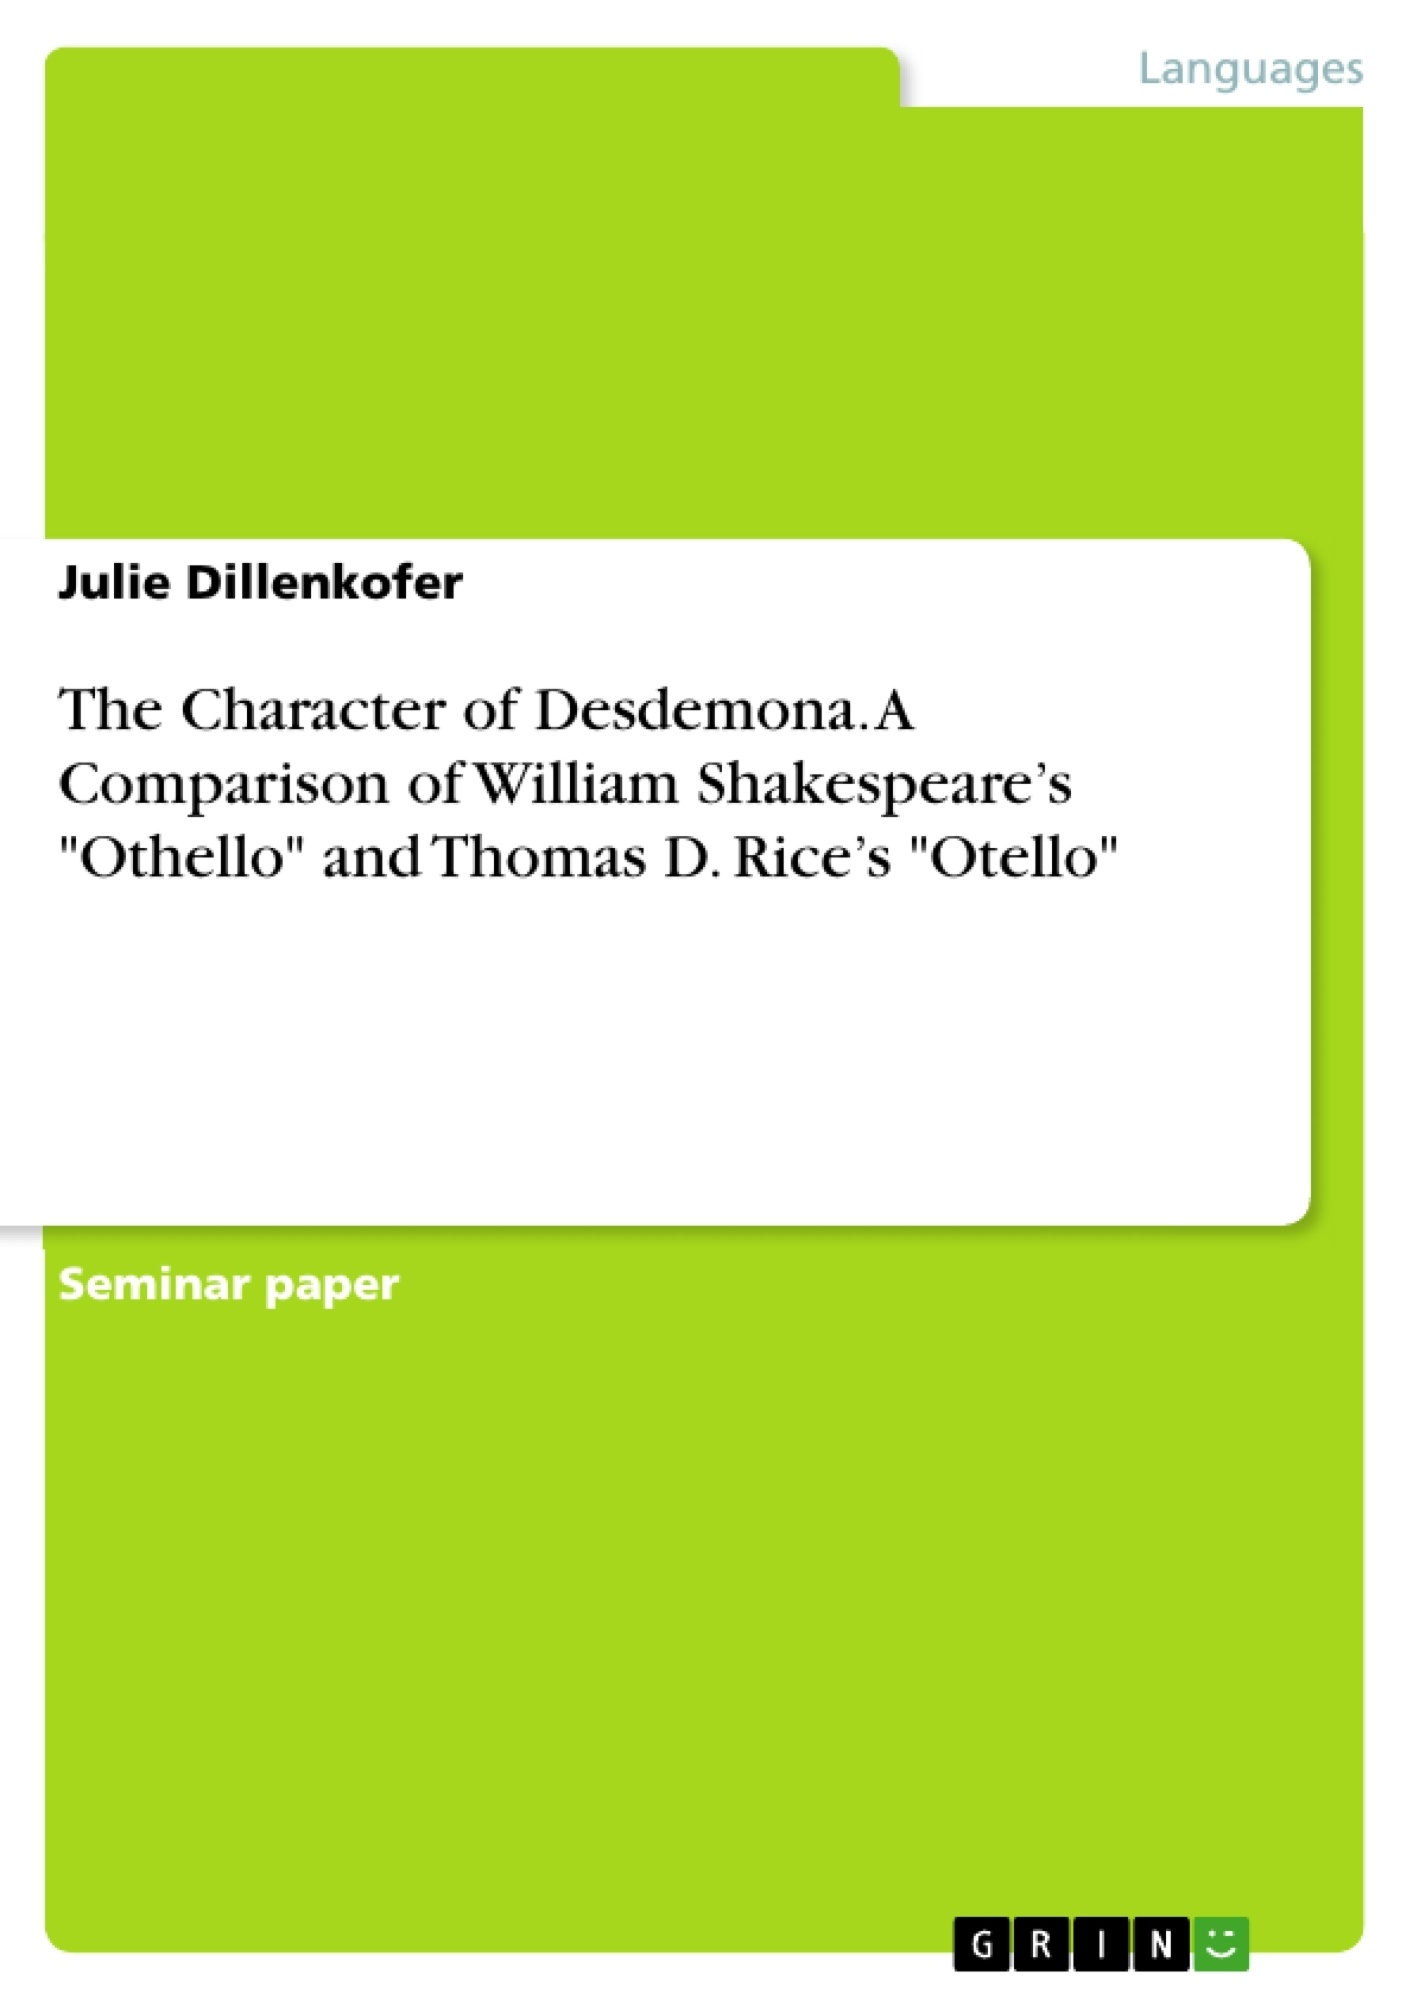 an analysis of shakespeares othello The analysis of shakespeare's 'othello' a study of contrast between english and persian translation international journal on studies in english language and literature (ijsell) page | 21.